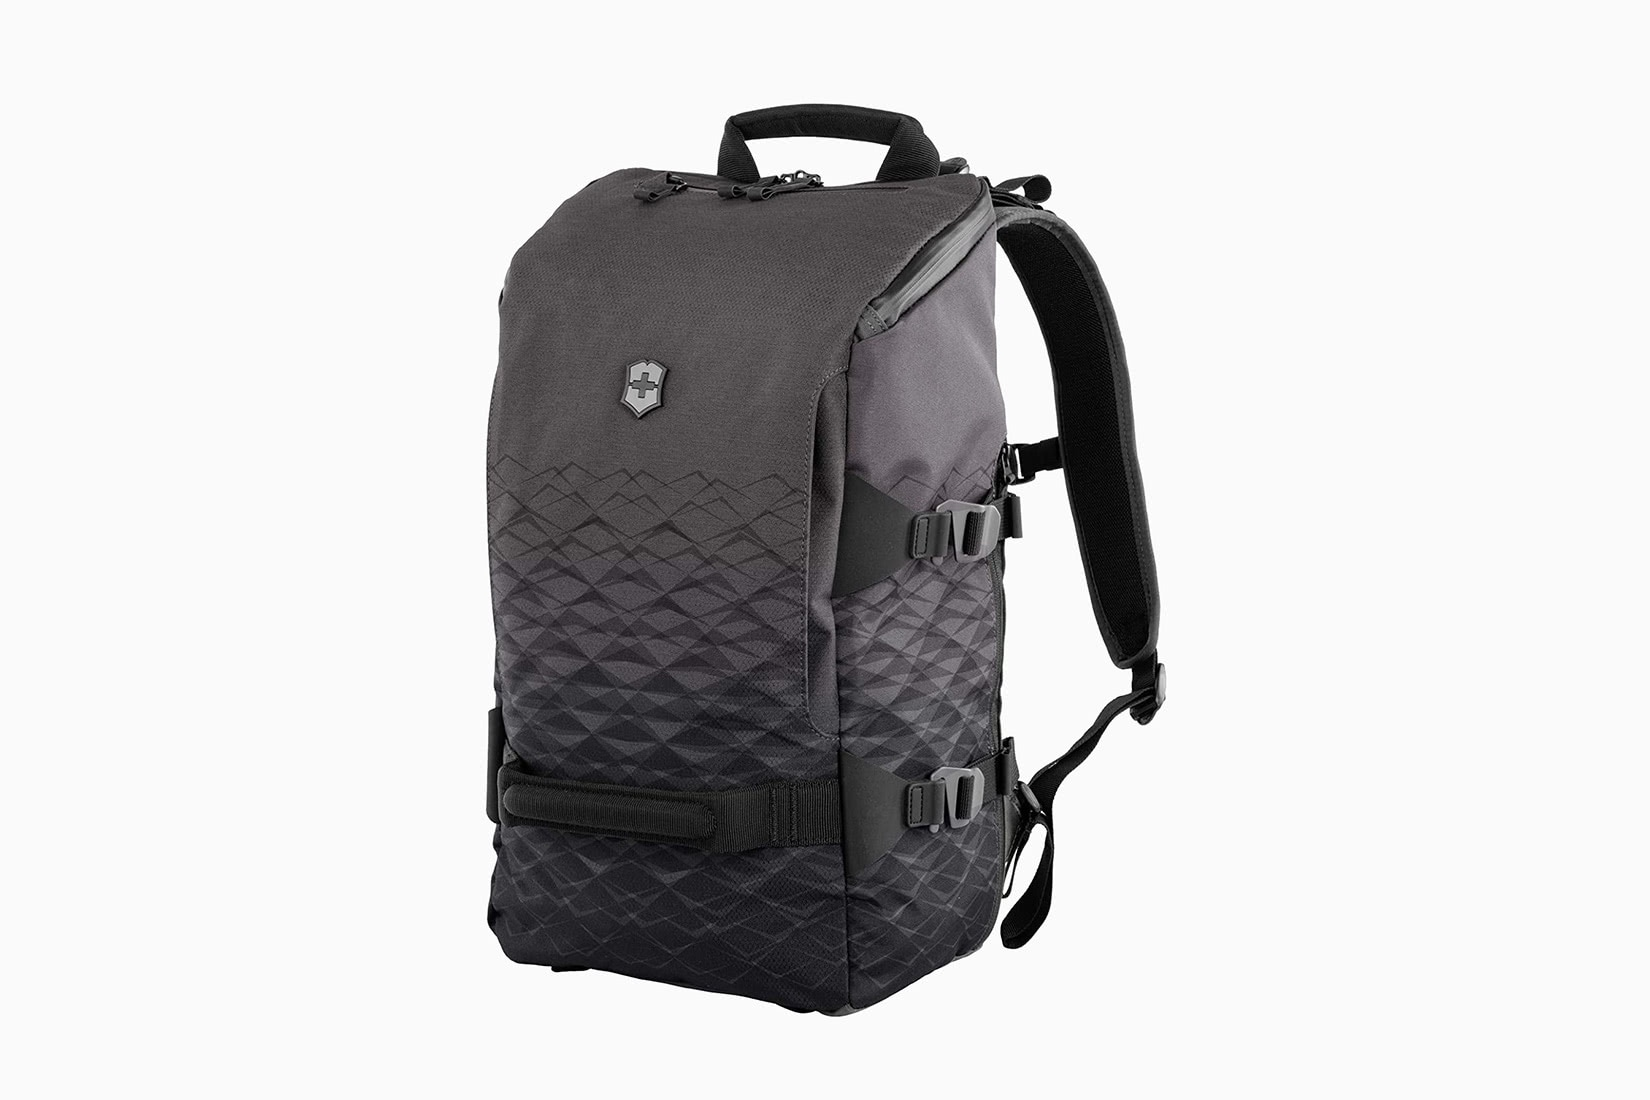 best tactical backpack victorinox VX touring - Luxe Digital